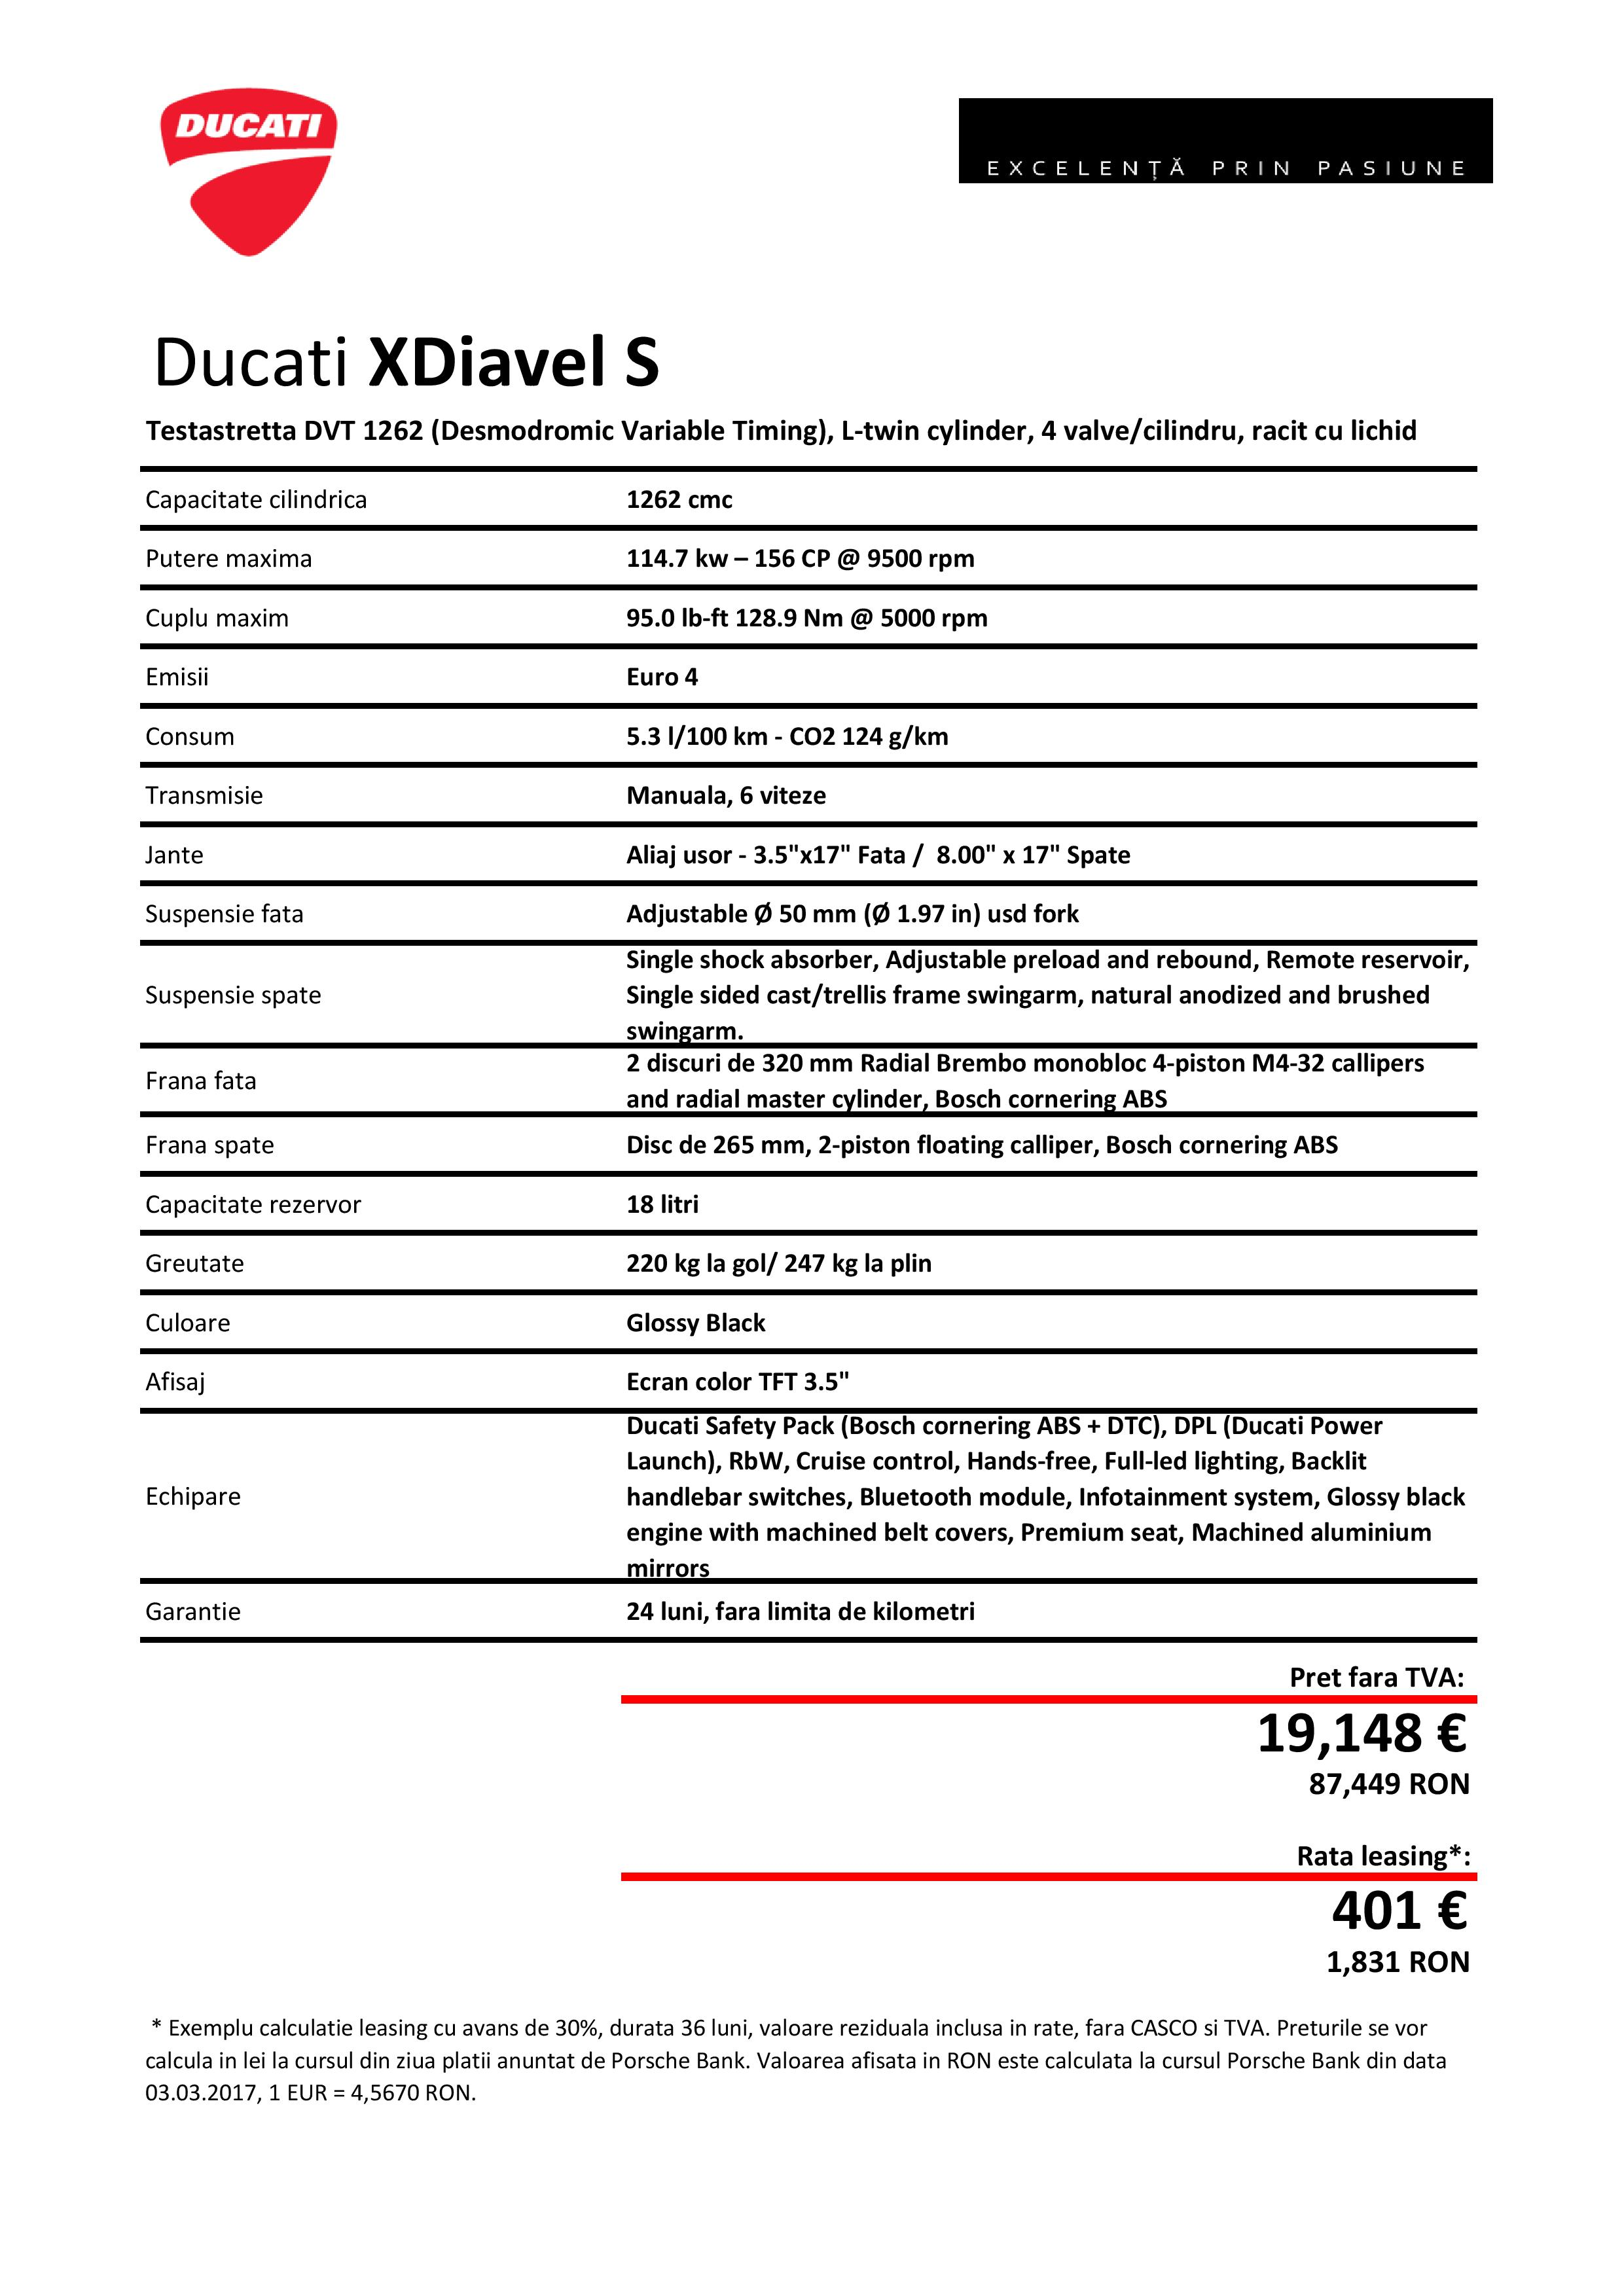 Lista pret Ducati XDiavel S-page-001